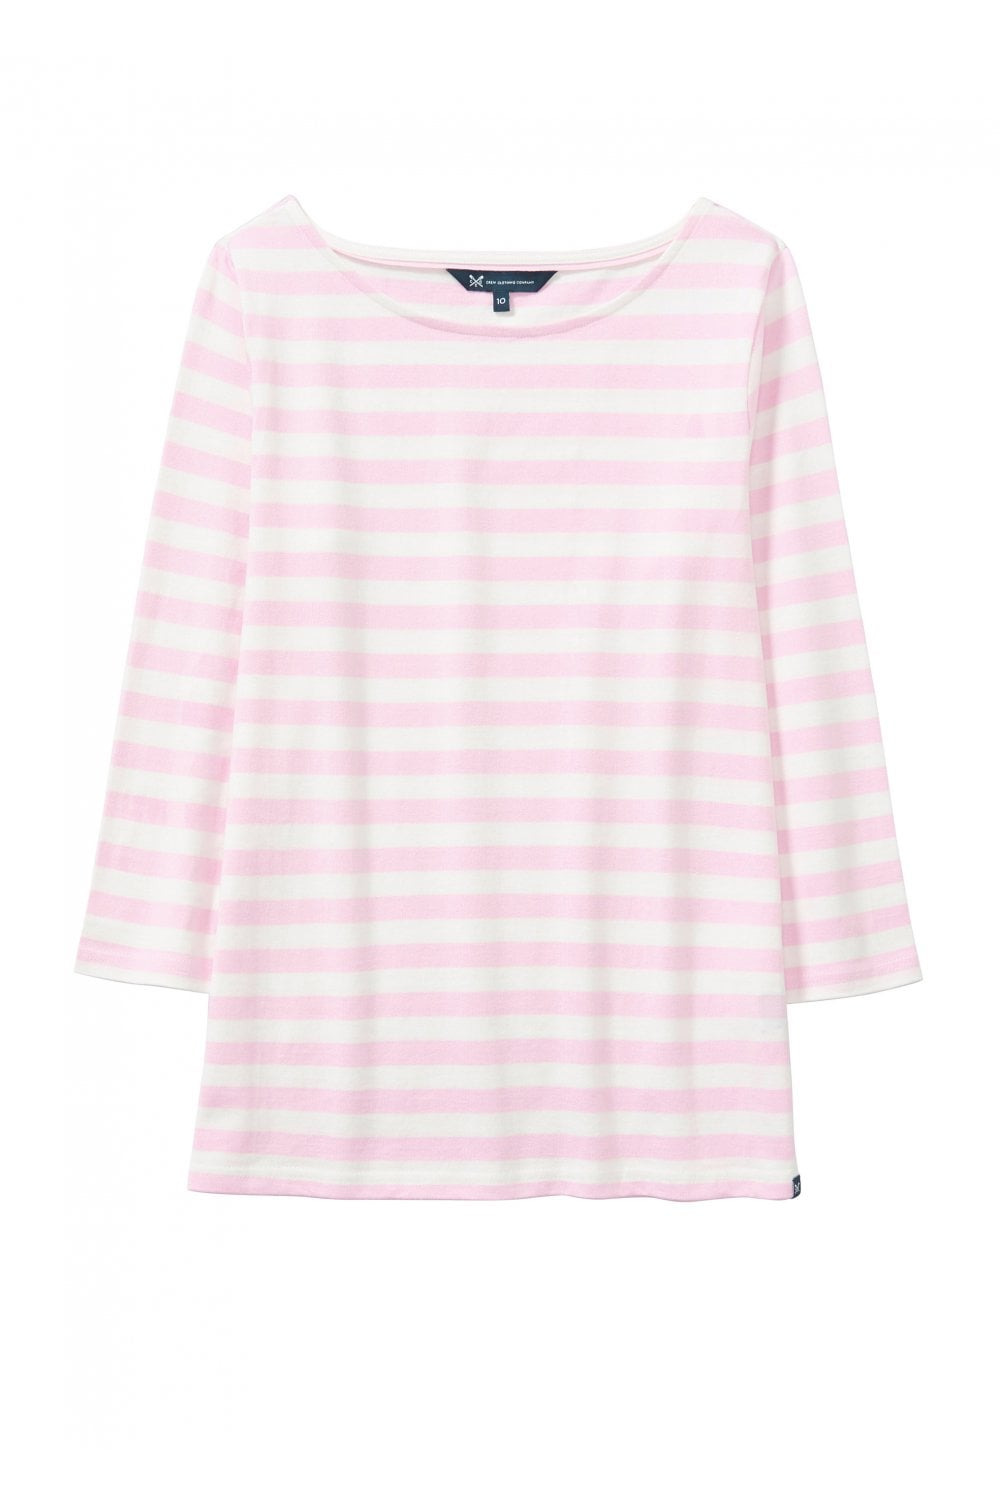 01024754844f Womens Ultimate Breton Striped Tee - Pure Pink/White. Crew Clothing ...